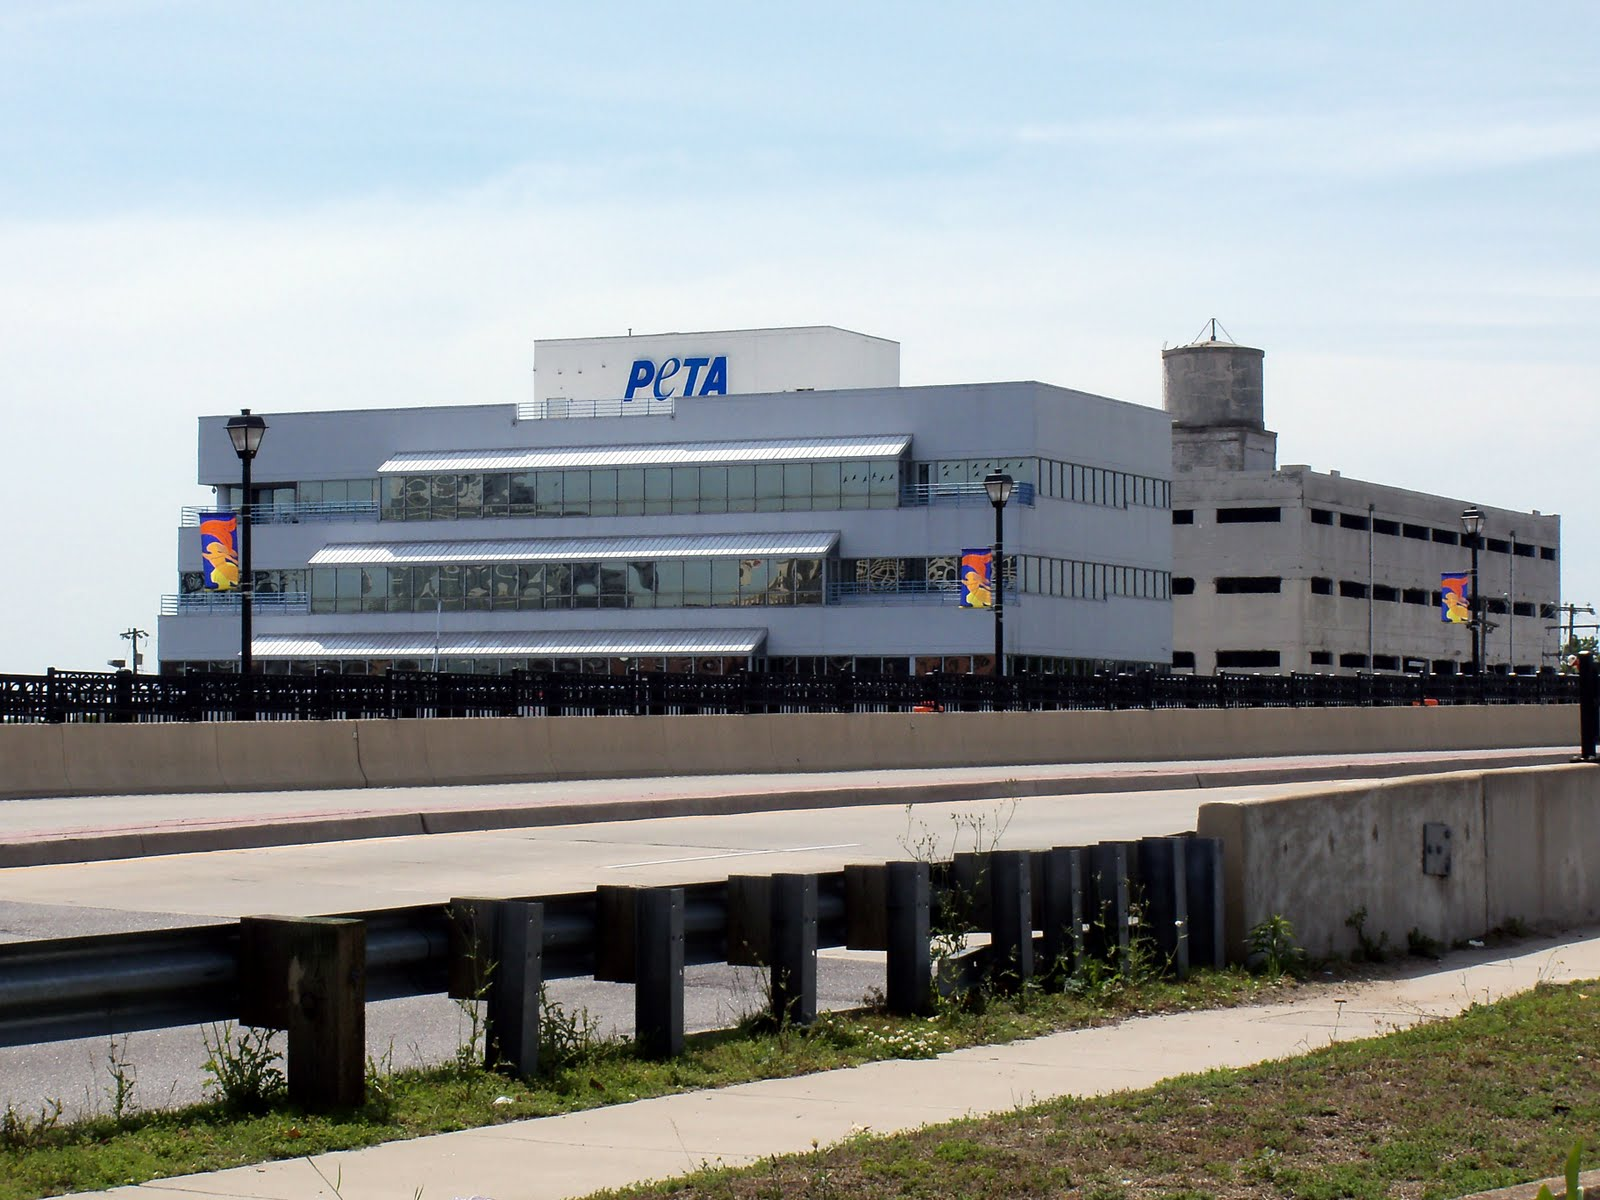 Picture of PETA HQ in Norfolk, Va. - May 2010